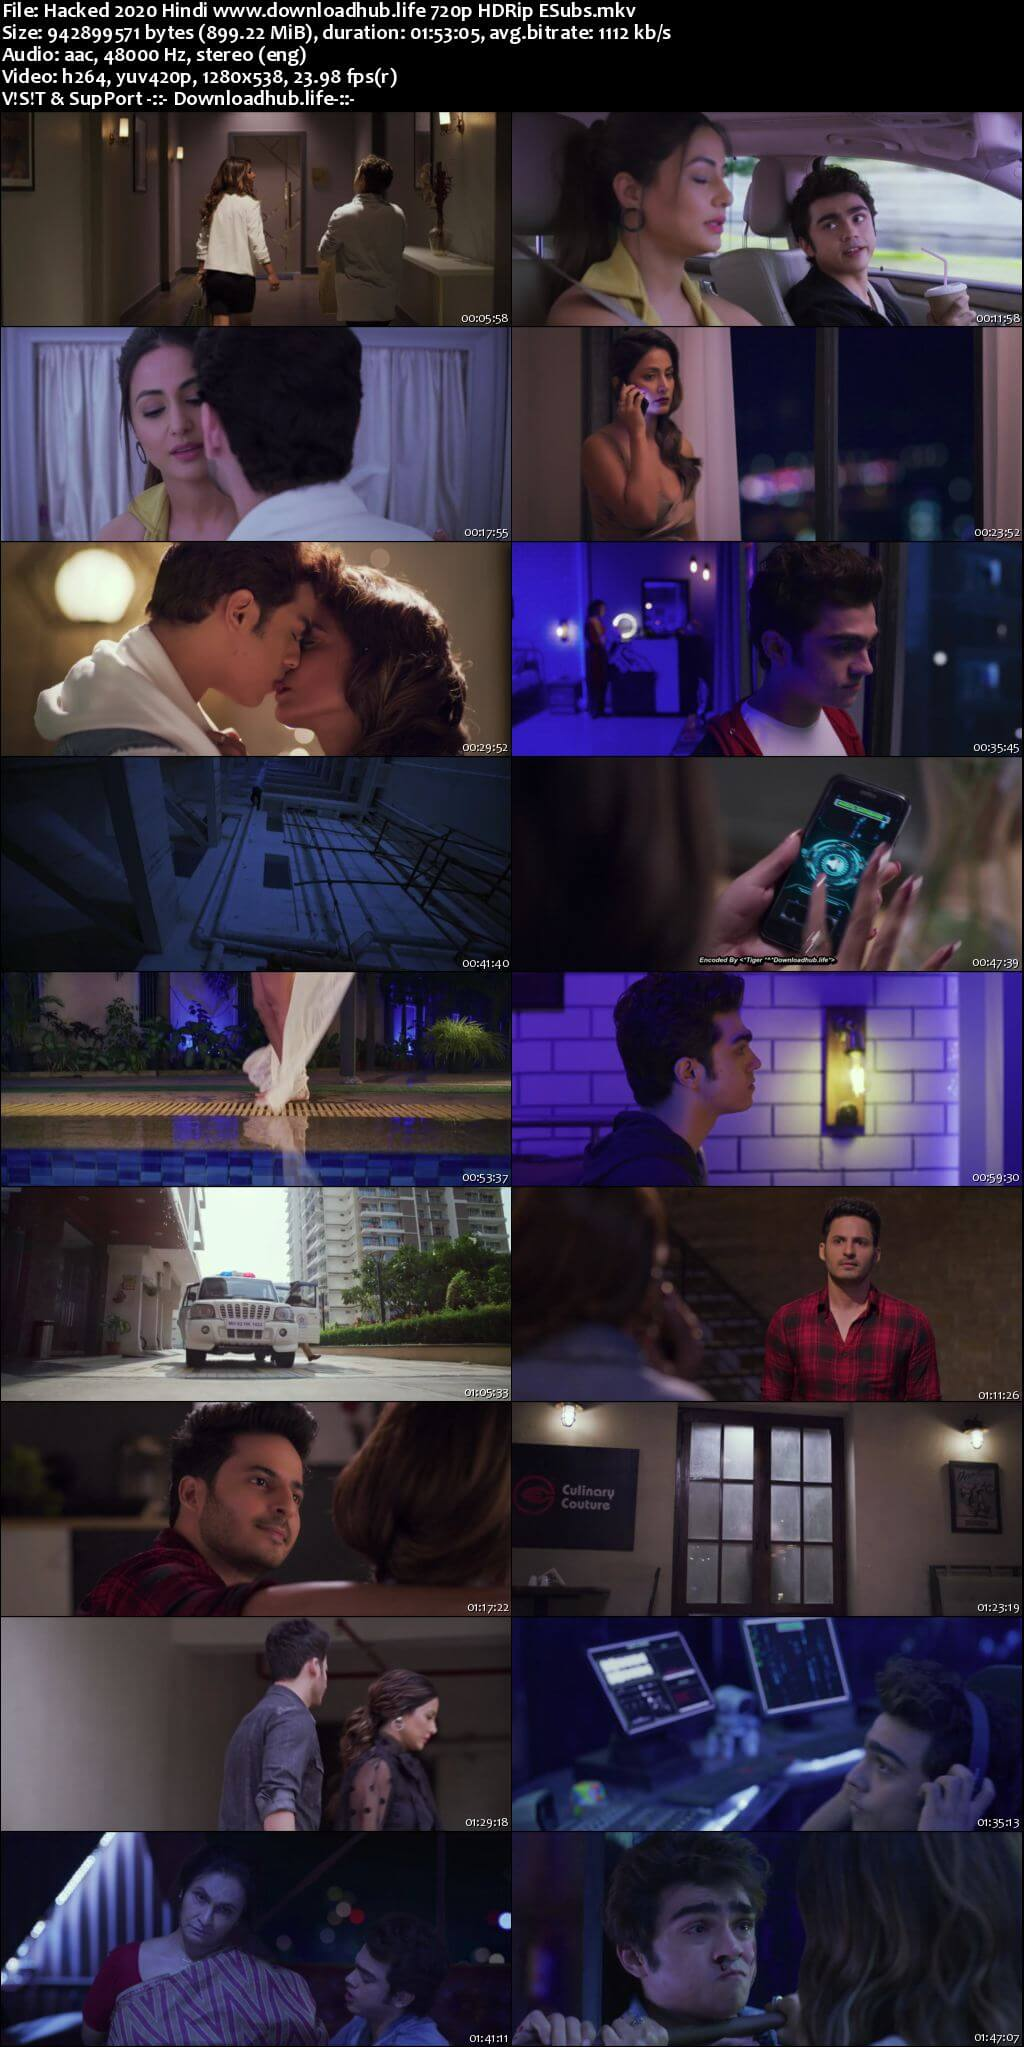 Hacked 2020 Hindi 720p HDRip ESubs